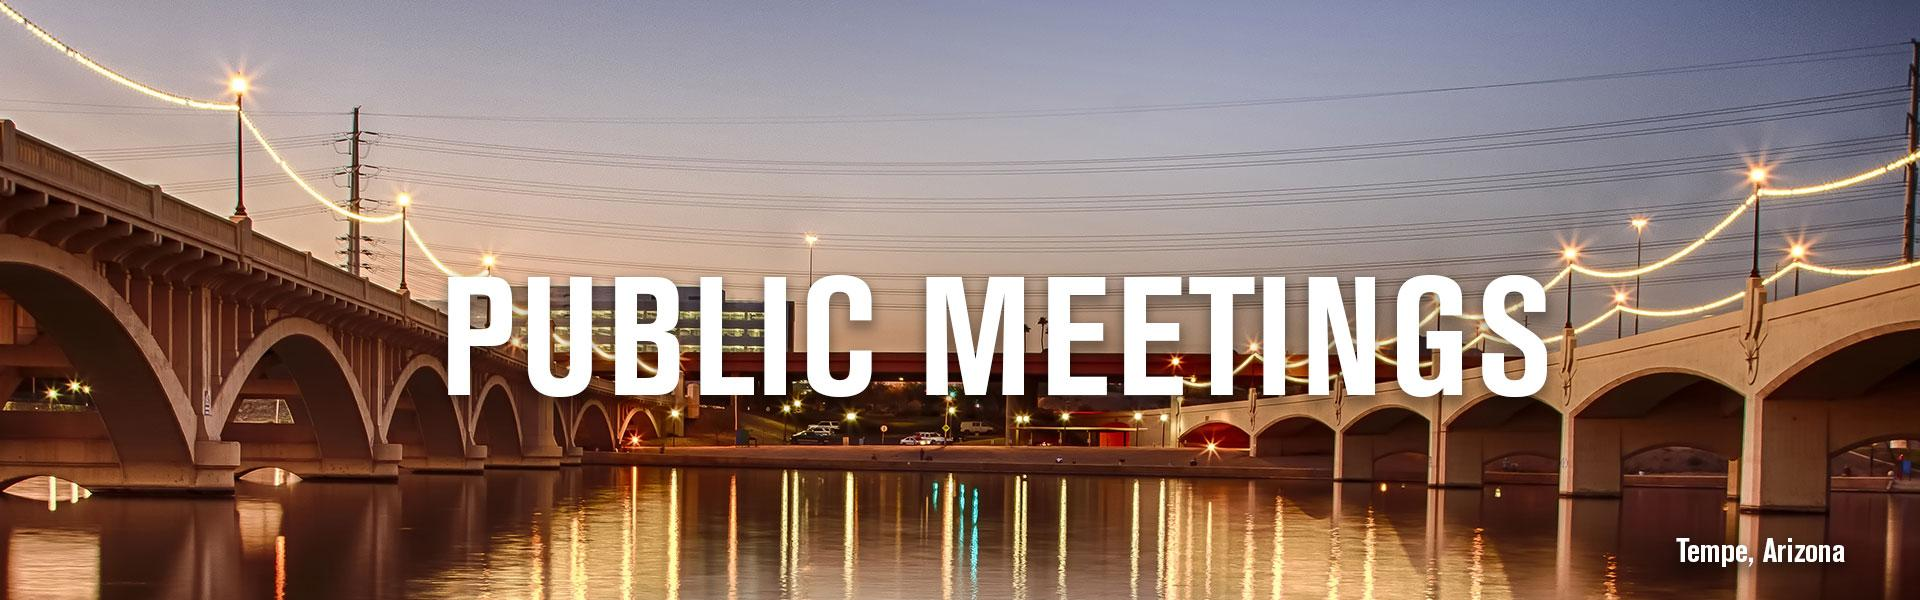 Public Meetings banner image